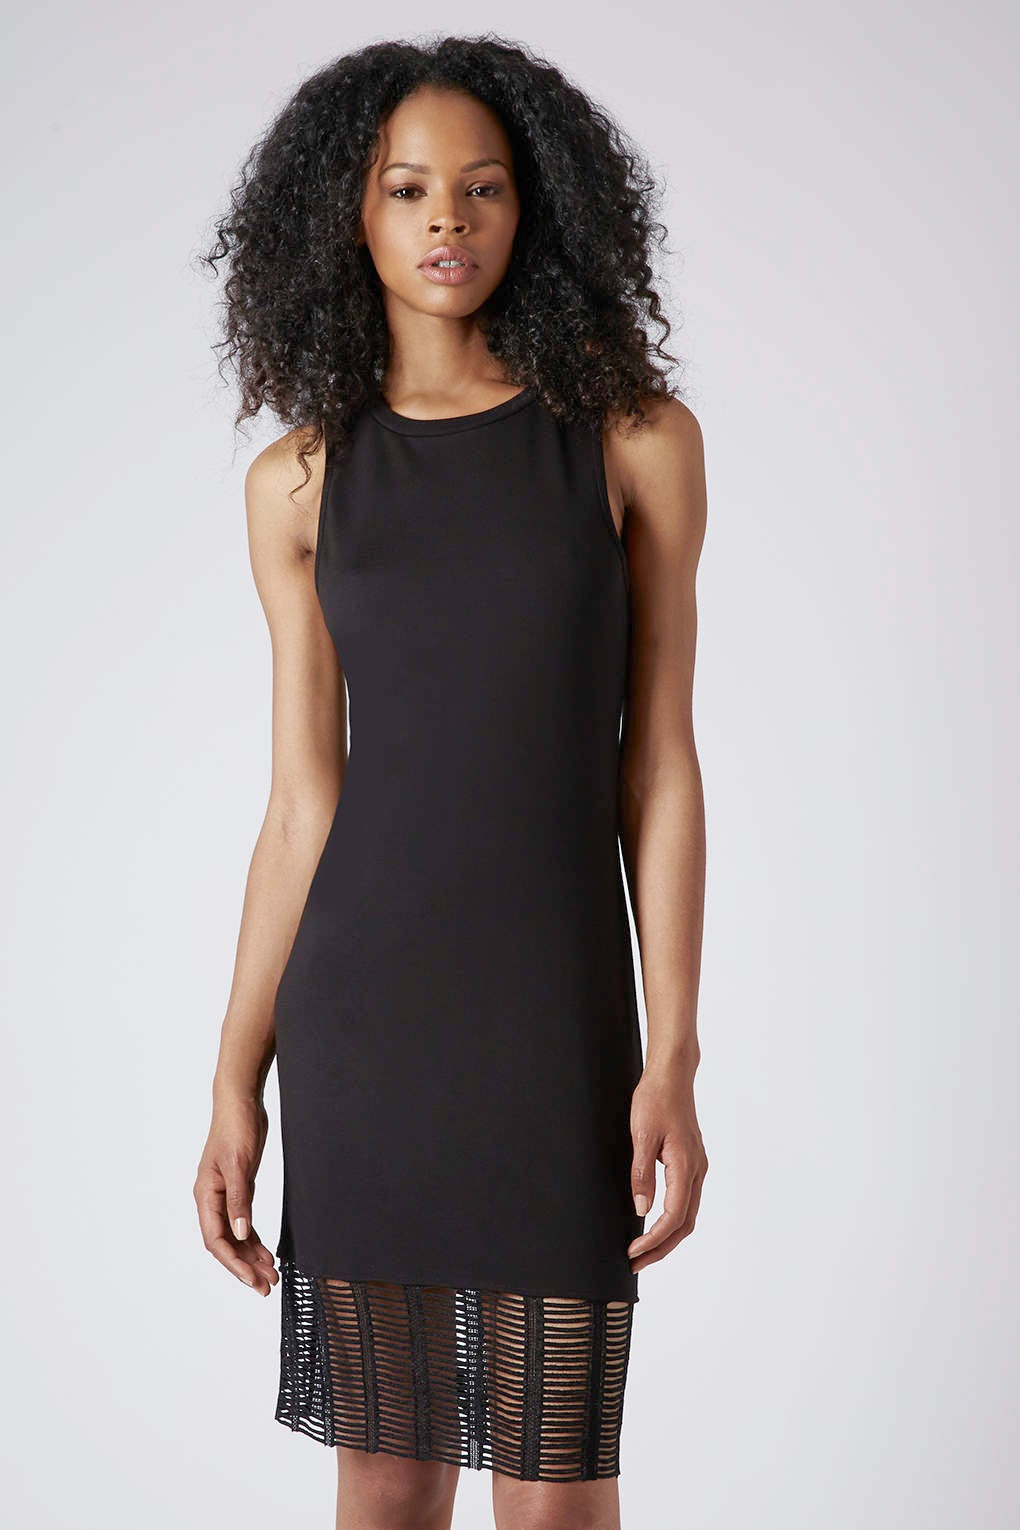 black dress with detail